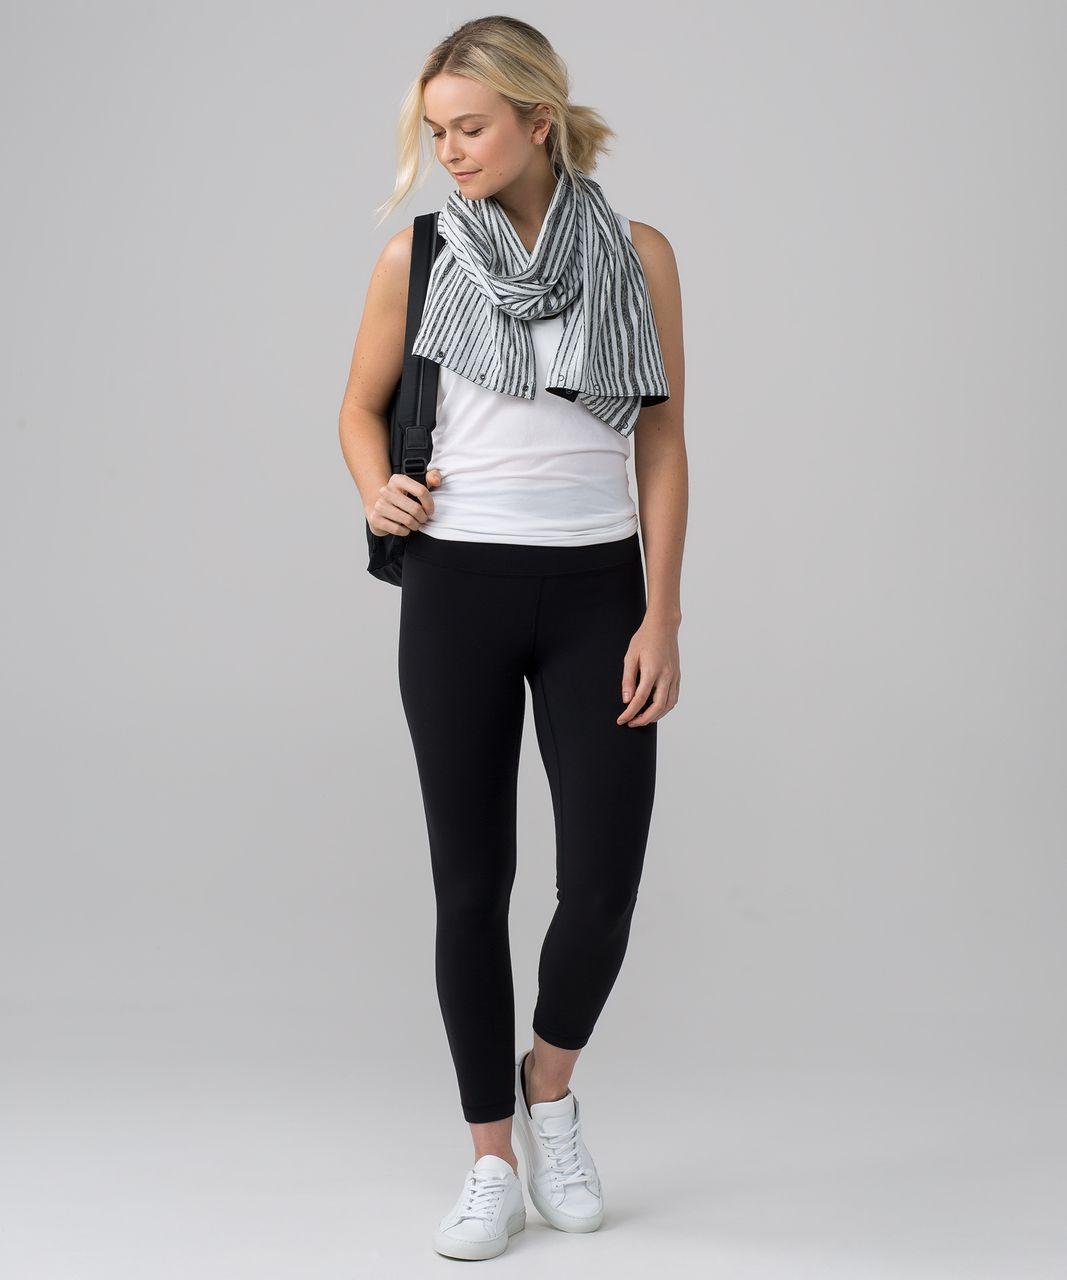 Lululemon Vinyasa Scarf *Rulu - Mini Akido Stripe Heathered Black Heathered Silver Spoon